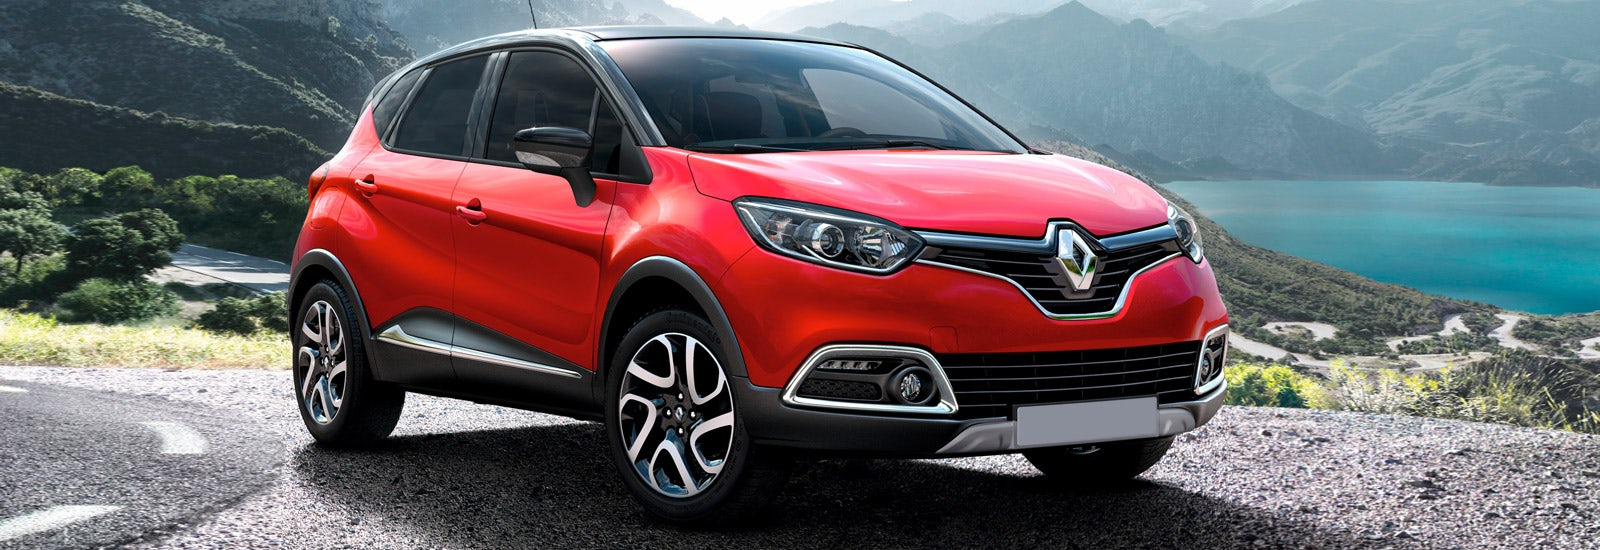 2008 10best cars 10best cars page 2 car and driver - 6 Renault Captur